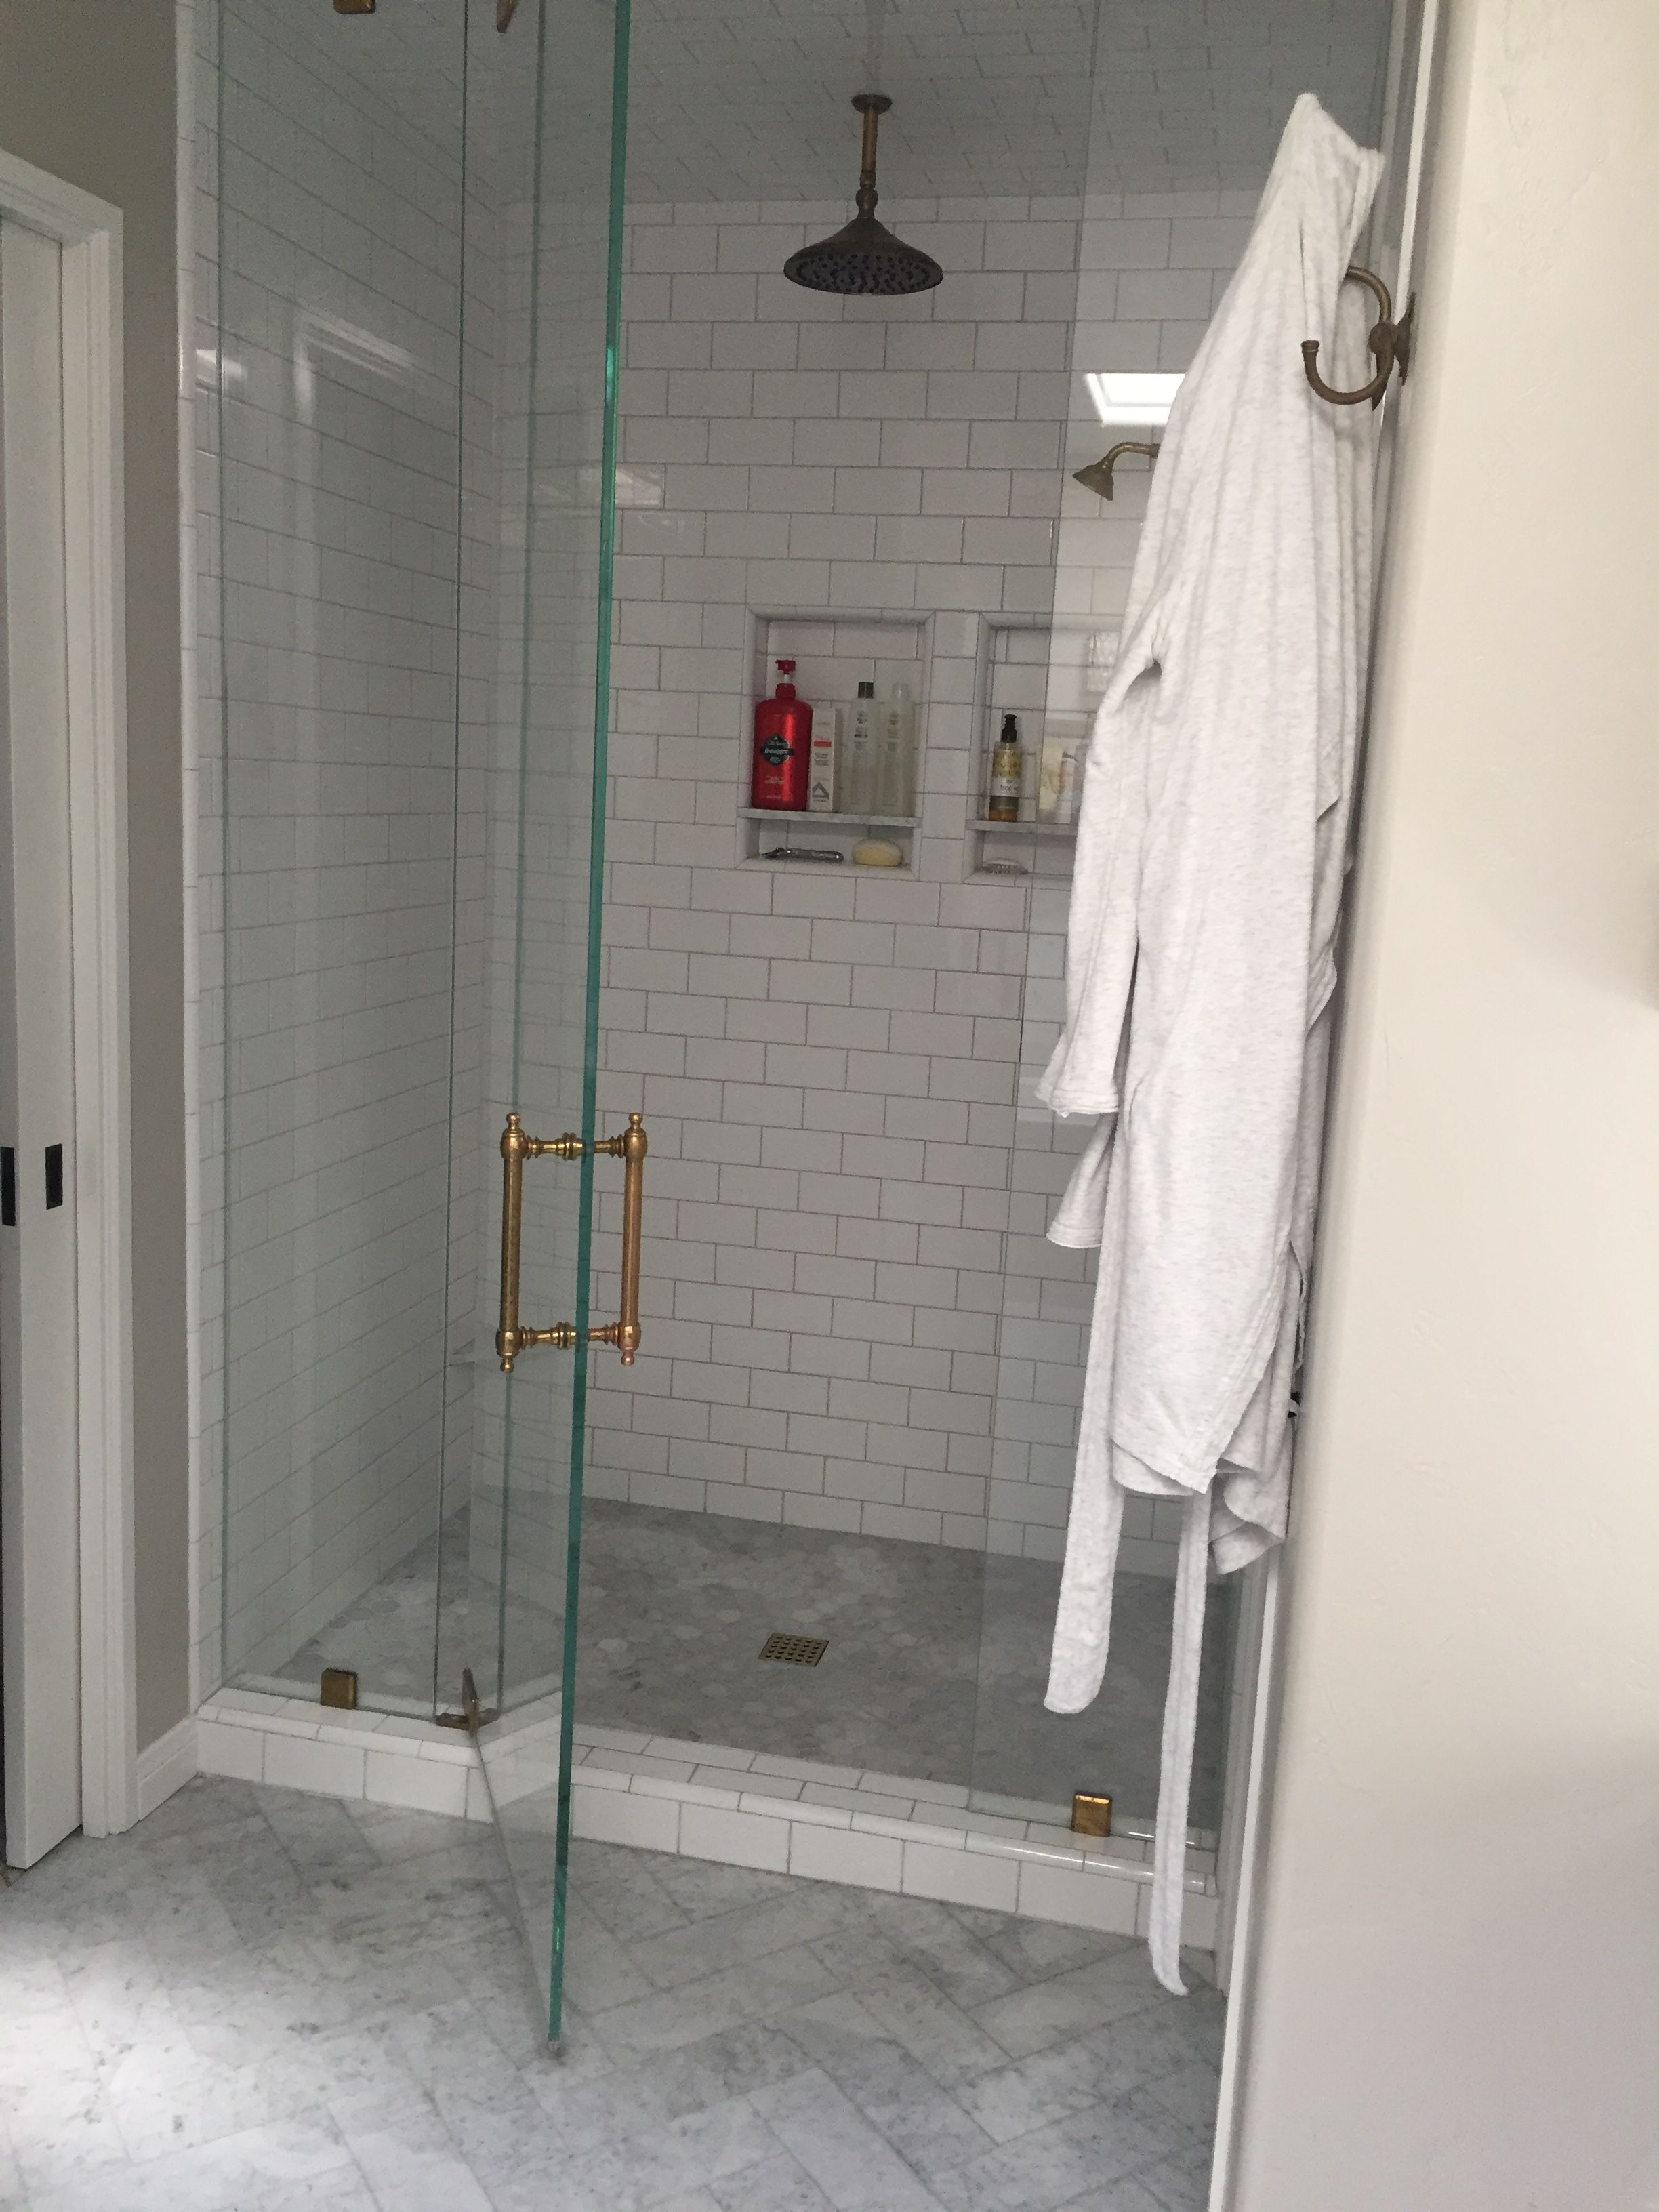 Gorgeous Carrara Marble And Subway Tile Bathroom With Gold Accents Subway Tiles Bathroom Tile Bathroom Marble Subway Tiles